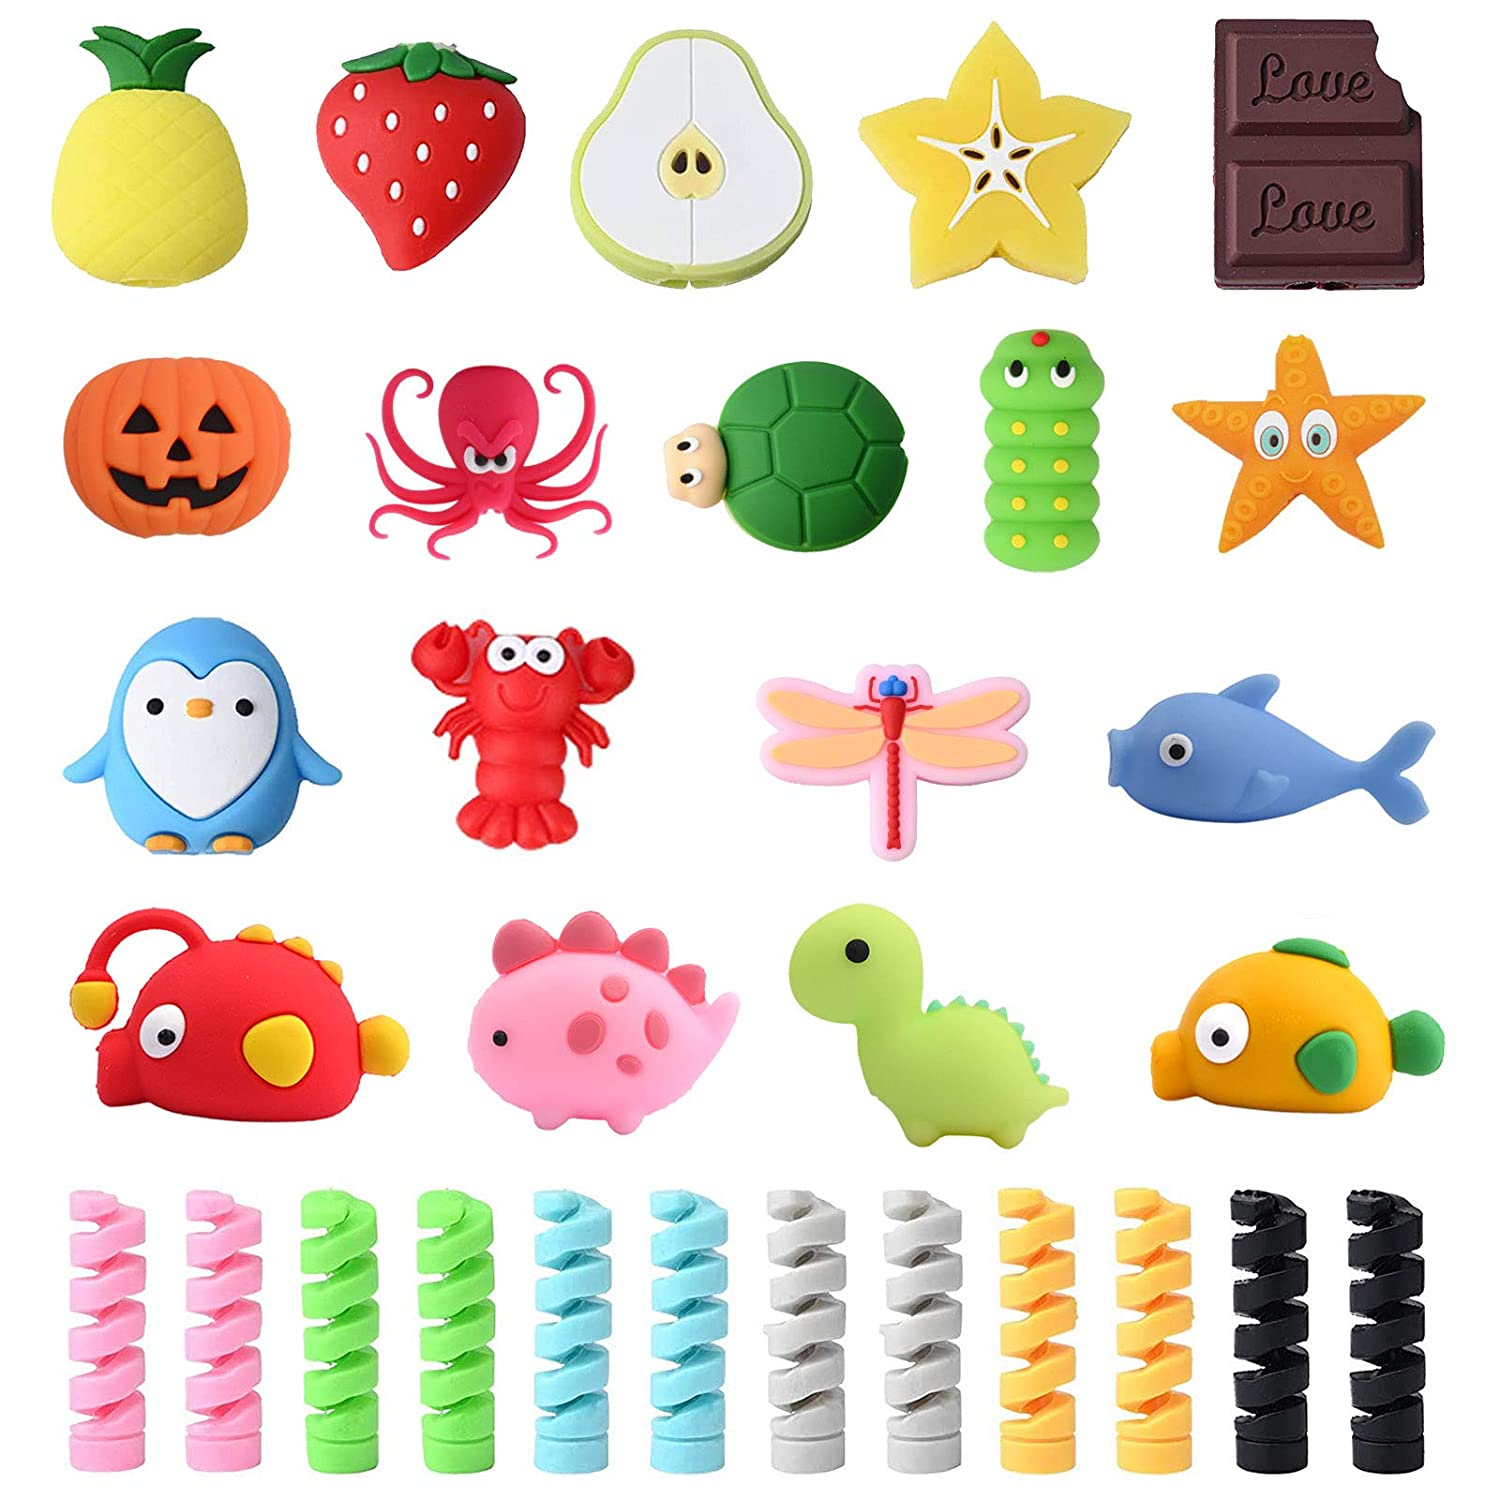 30 Pieces Cable Protector for iPhone/ipad USB Lightning Cable,Cute Unicorn Fish Dinosaur Animal Fruit USB Charger Cable Saver Cable and Spiral Tube Spring-Shaped Flexible Wire Protector